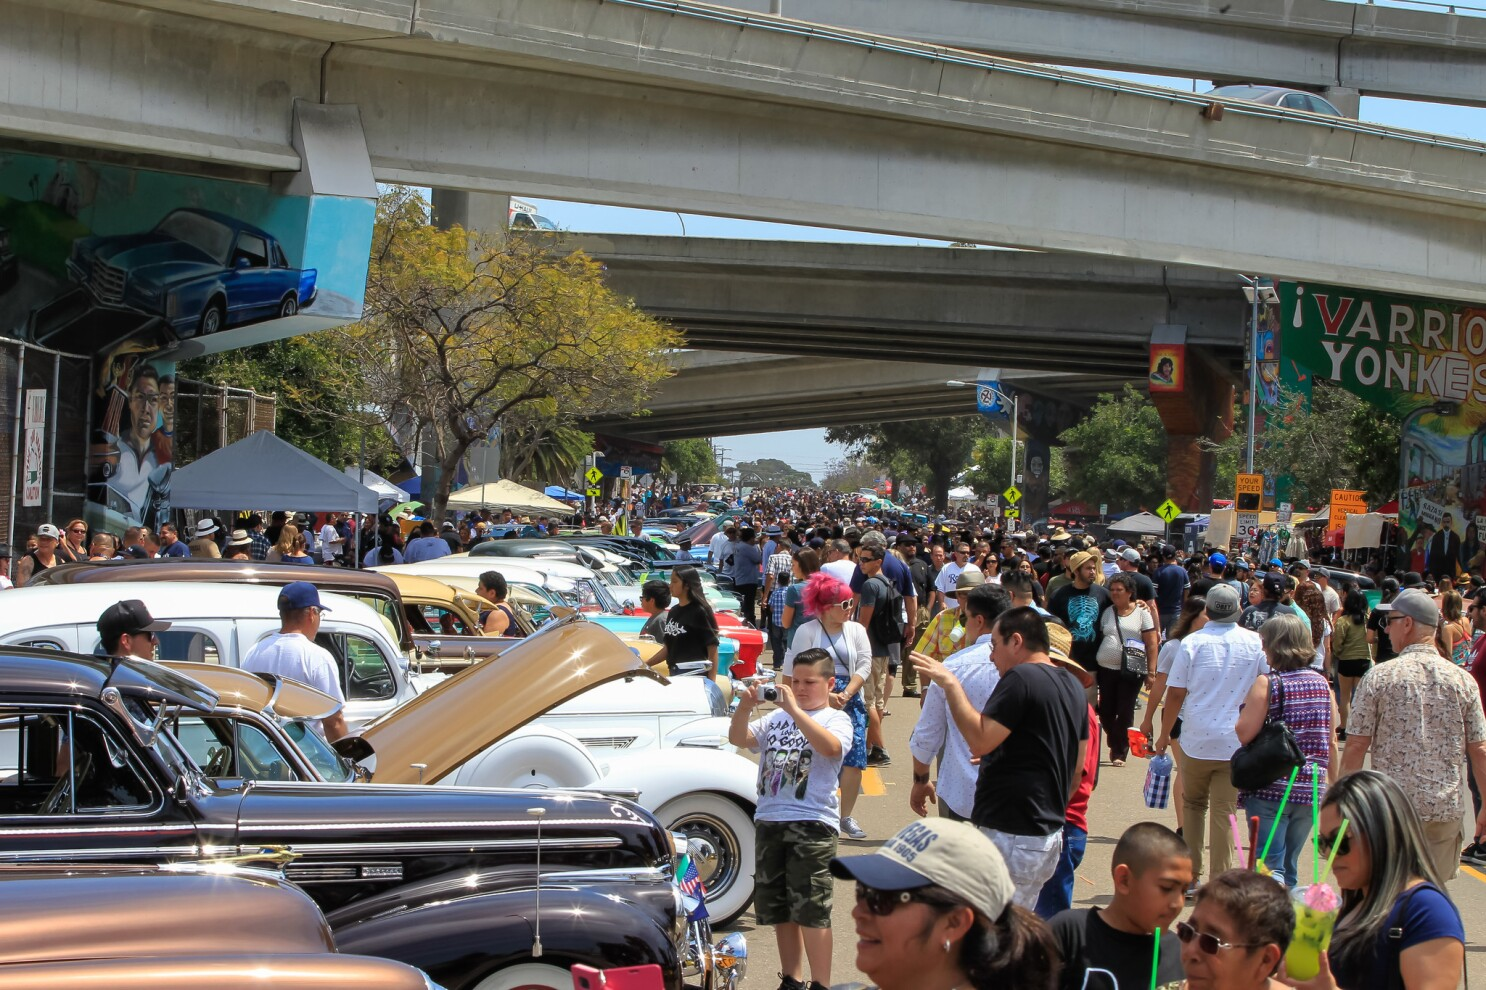 Chicano Park Day Postponed Due To Covid 19 Concerns The San Diego Union Tribune